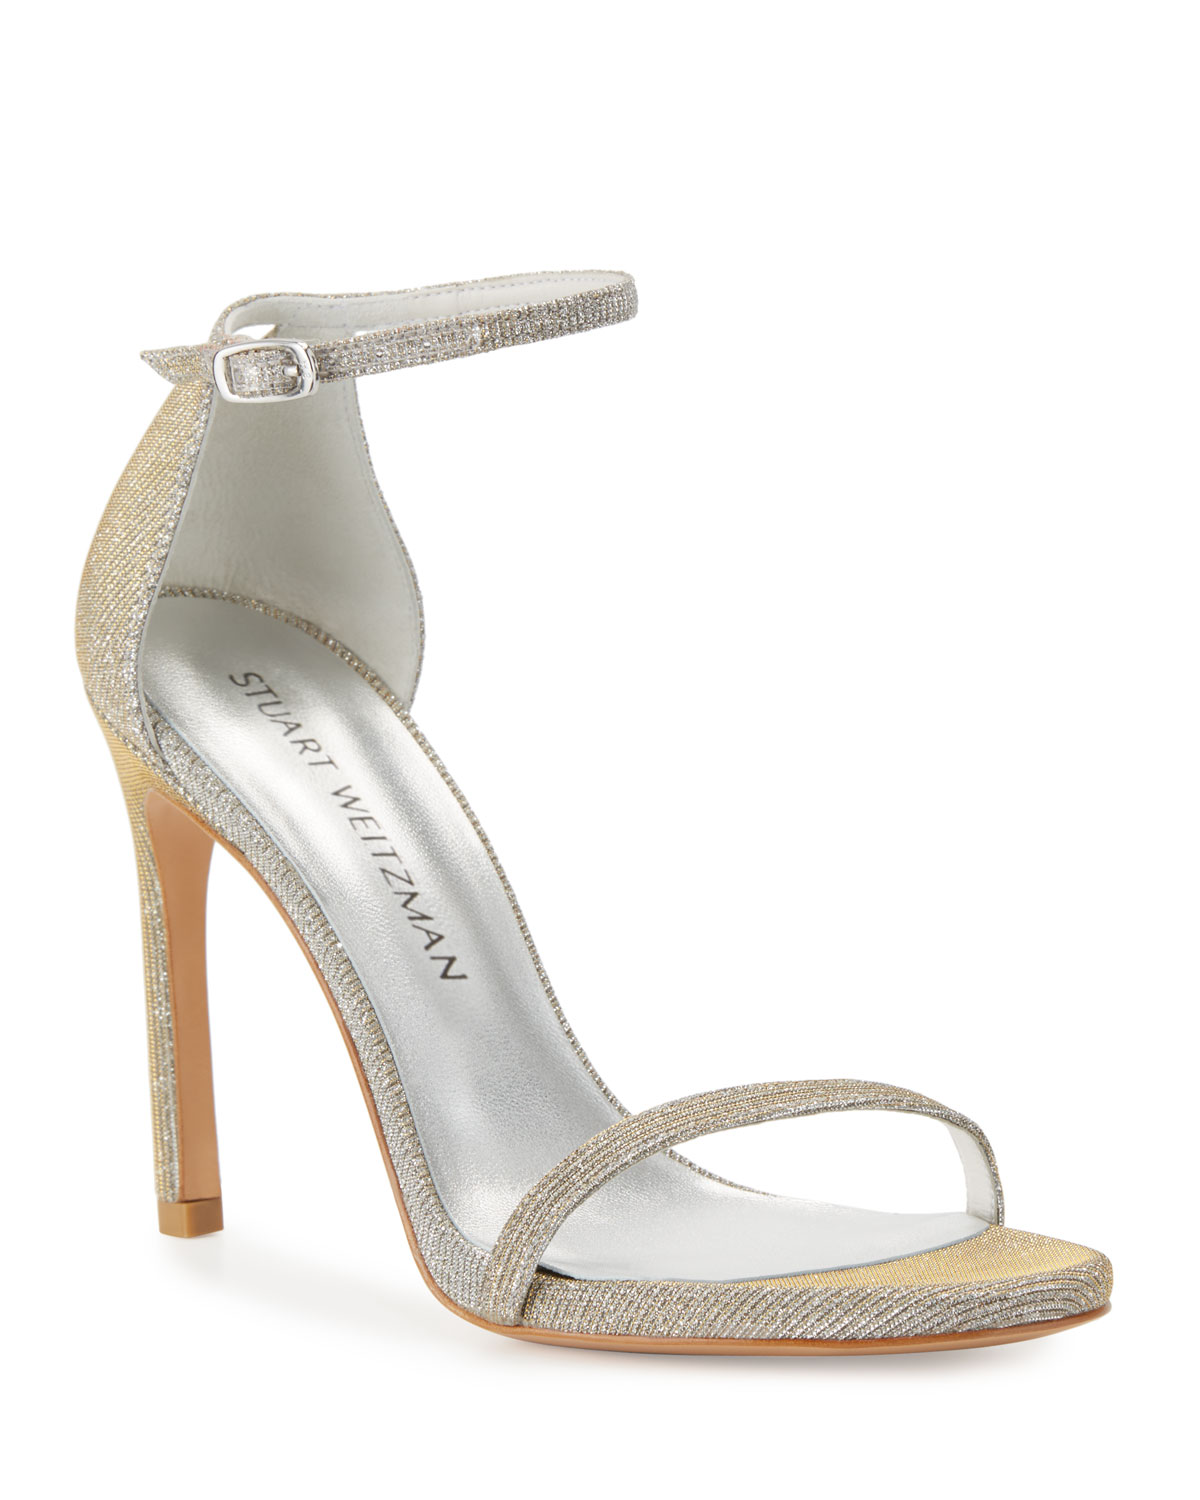 375f1353d43b Stuart Weitzman Nudistsong Shimmery Ankle-Wrap Sandals